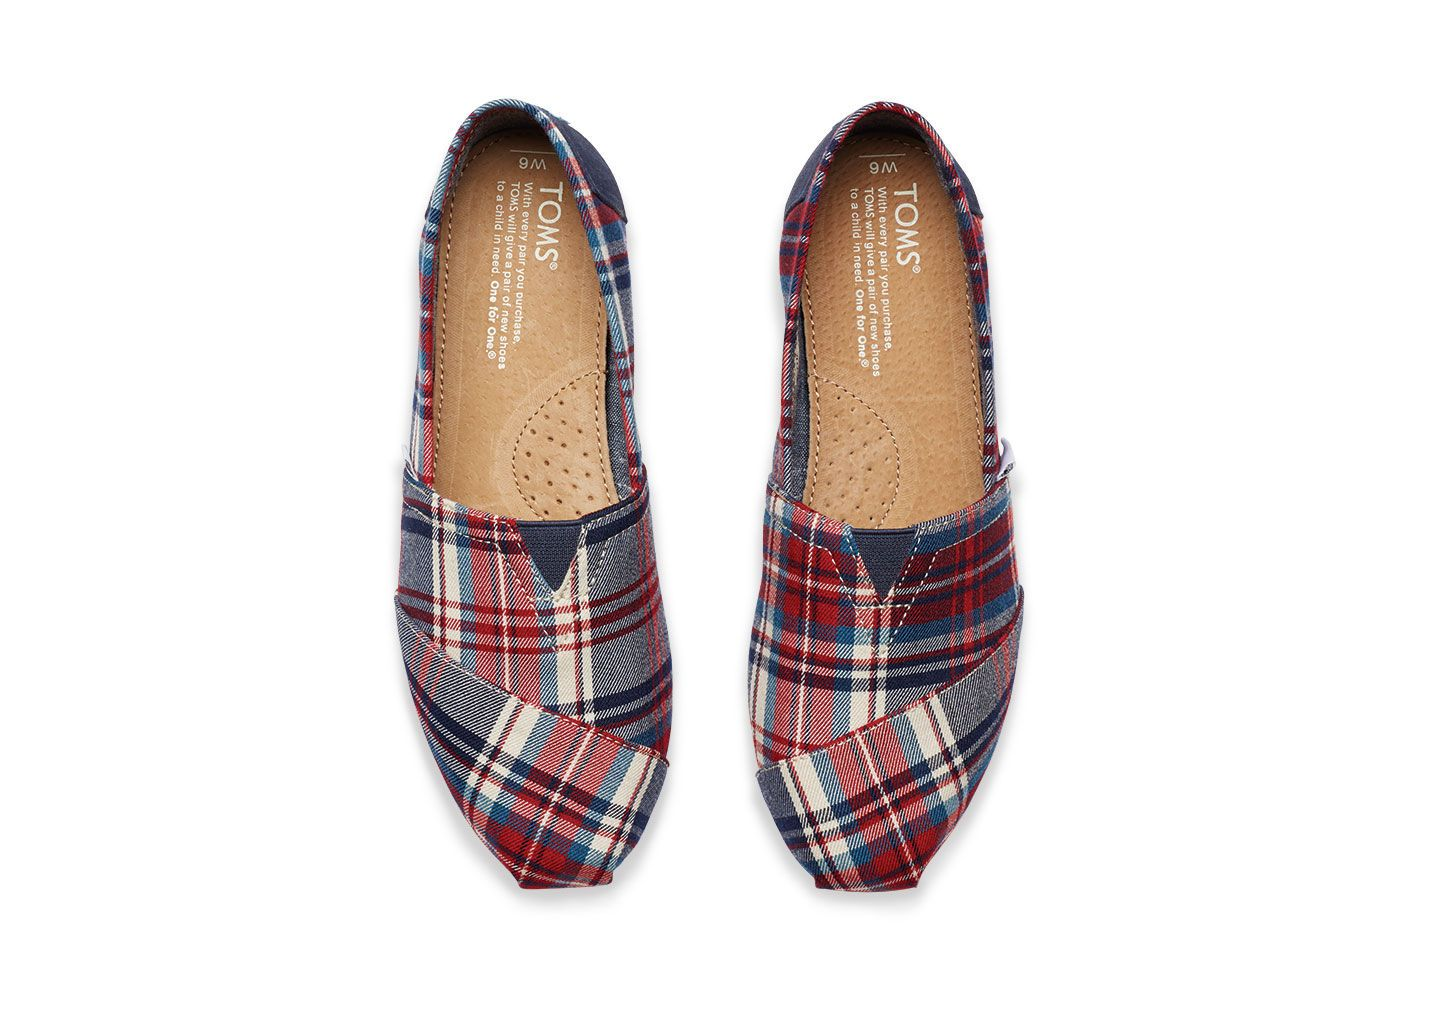 She'll be wearing these TOMS women's Red and Blue Plaid Classics all year  round